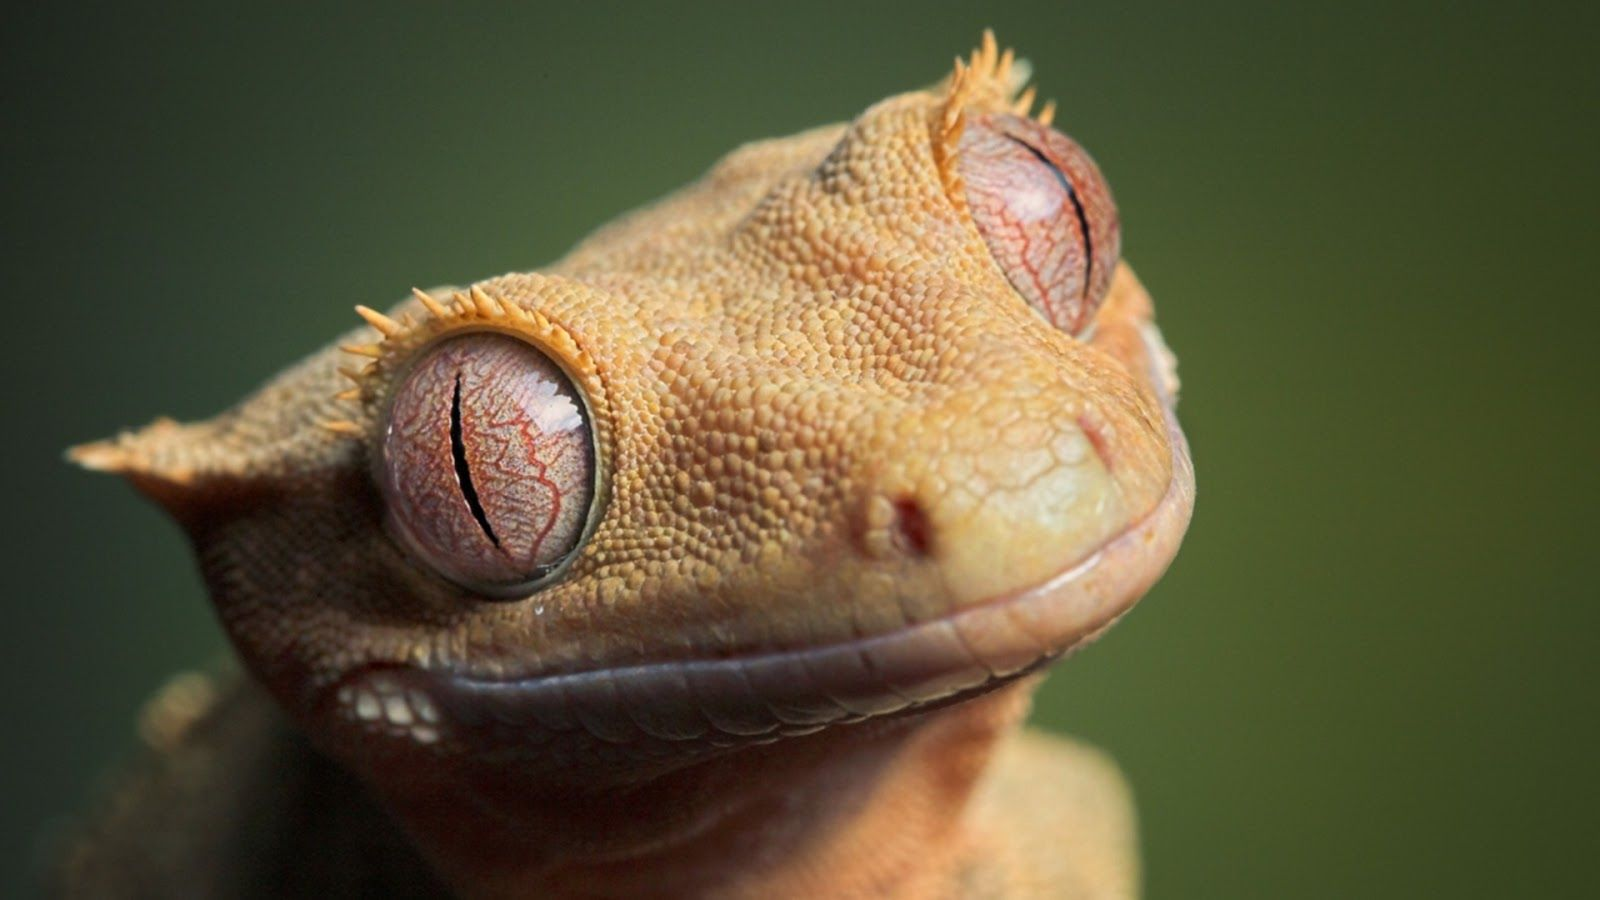 Beautiful Wallpaper: Reptiles fondo de pantalla hd, fondo de pantalla hd, reptil hd